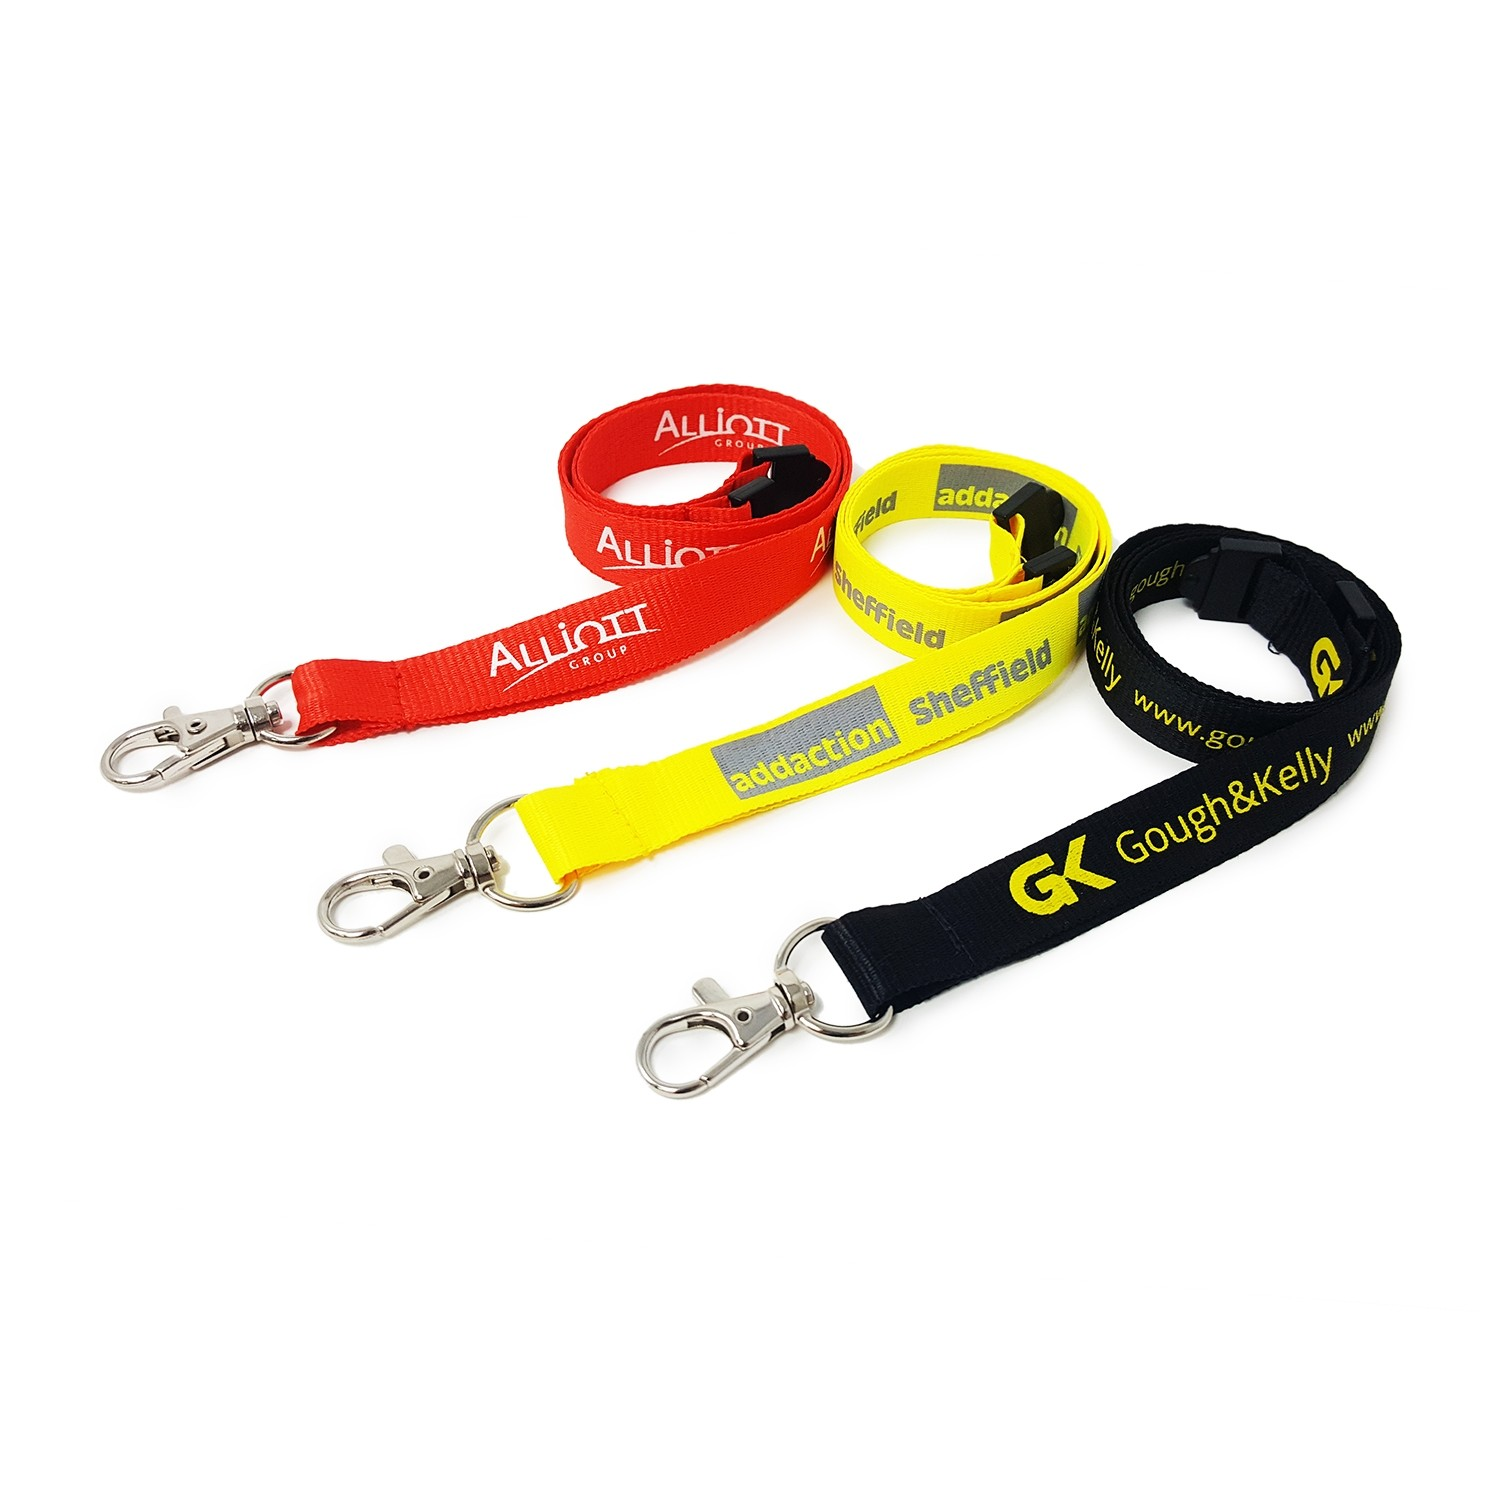 Getting Suitable Custom Lanyards For Your Business